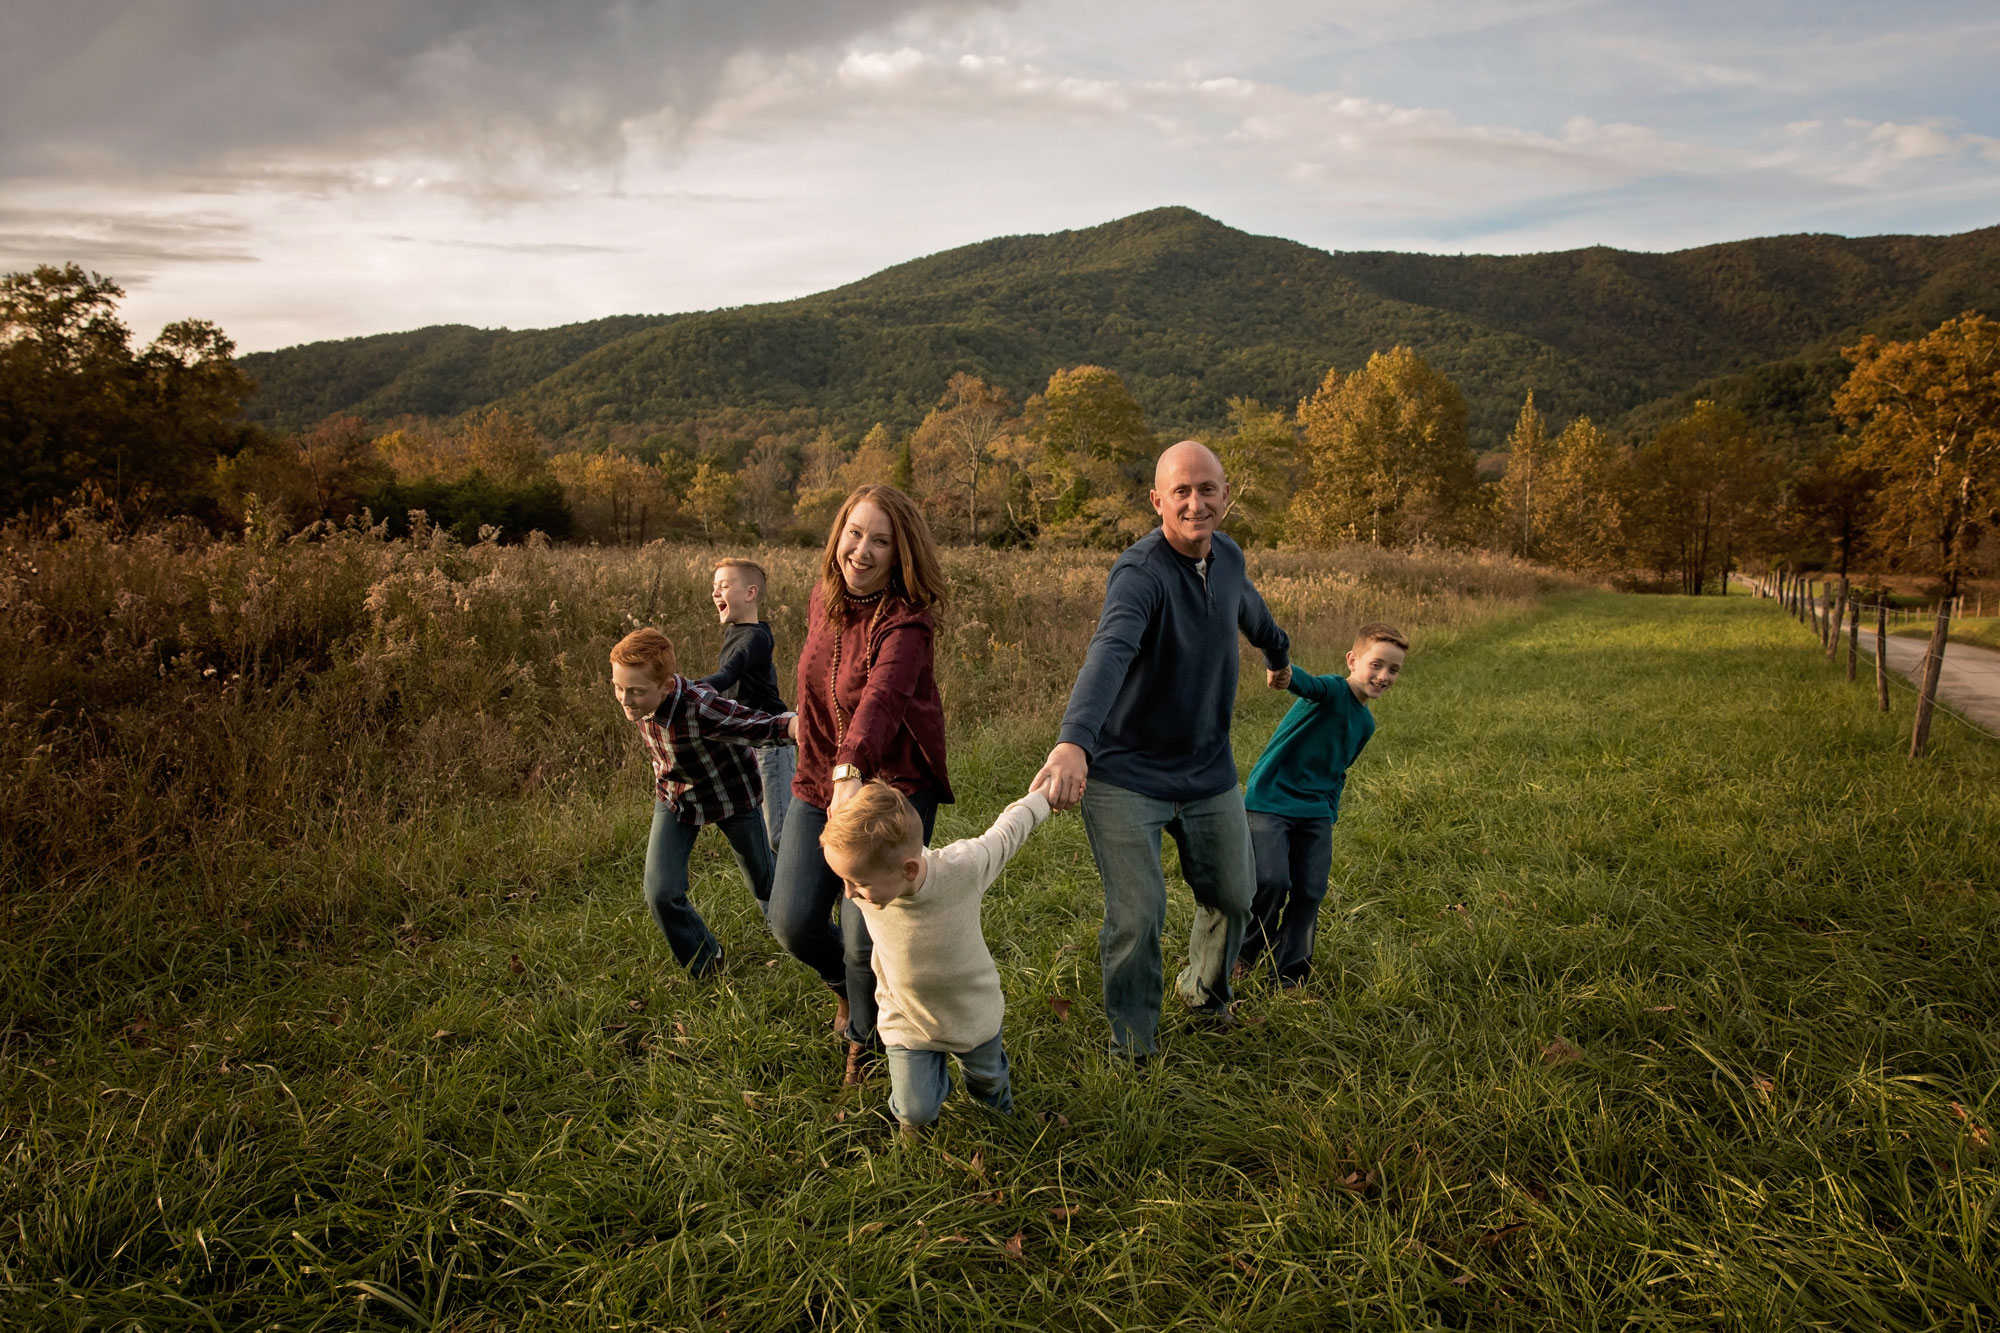 candid-family-pictures-gatlinburg-tn.jpg